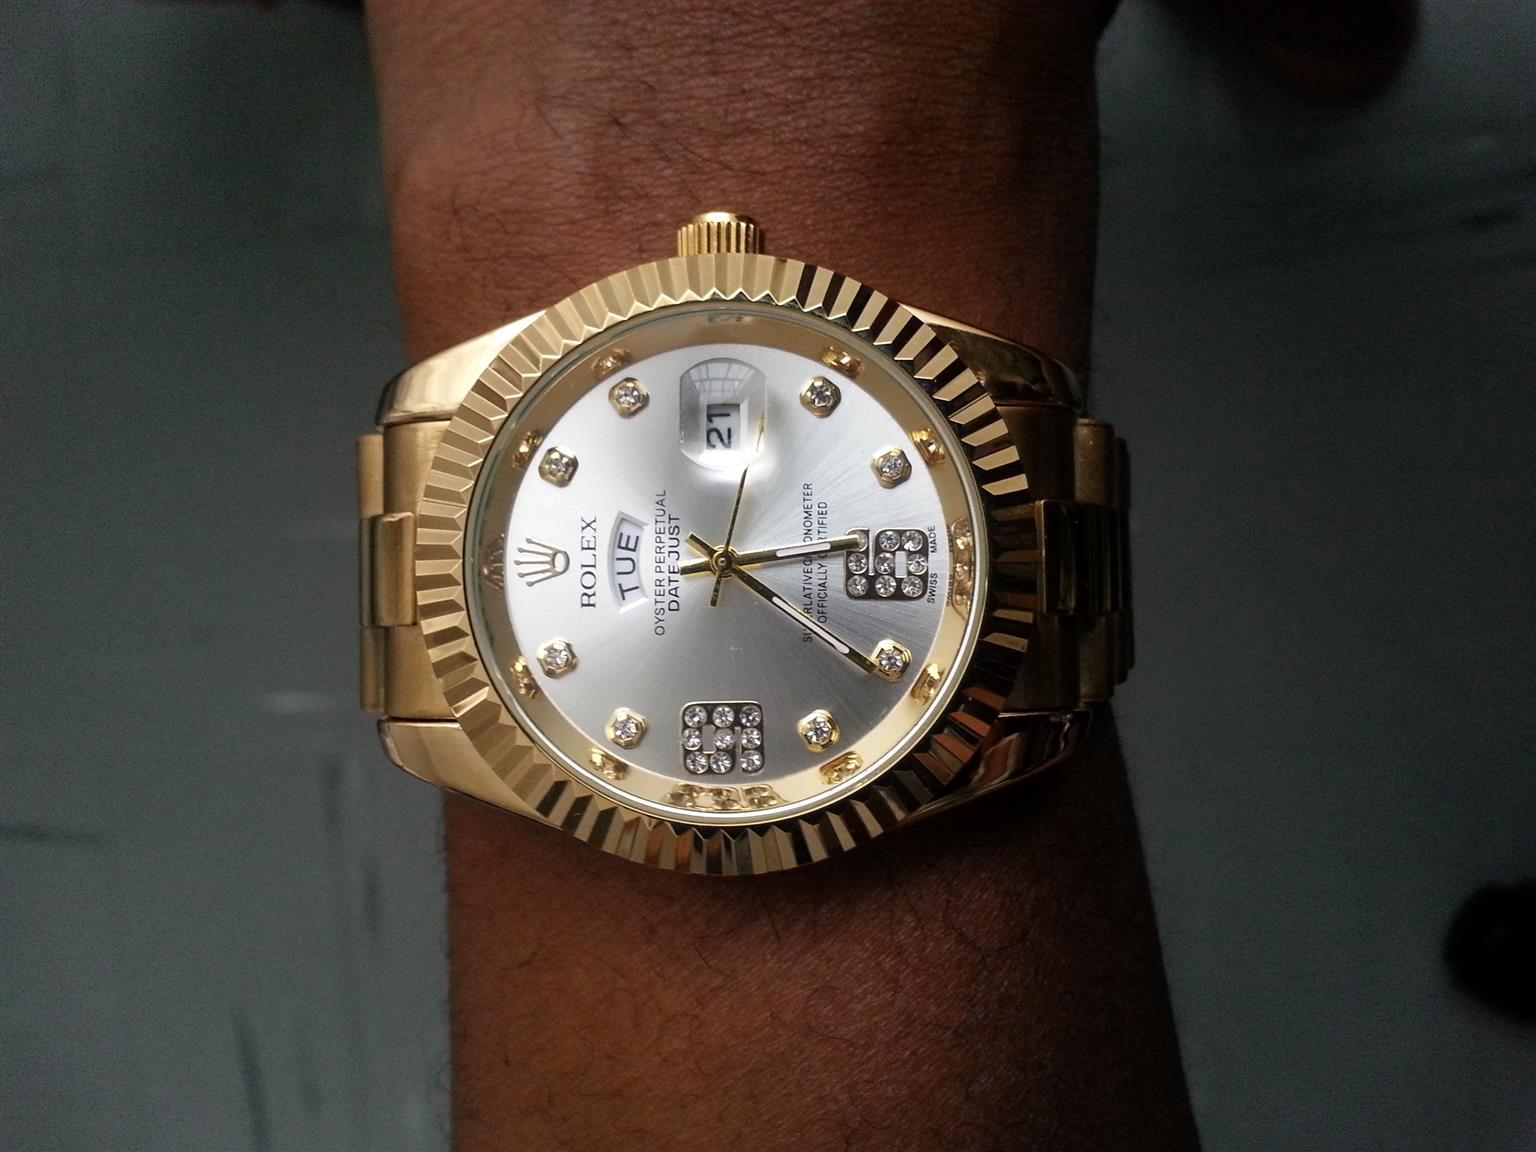 Rolex Replica for sale